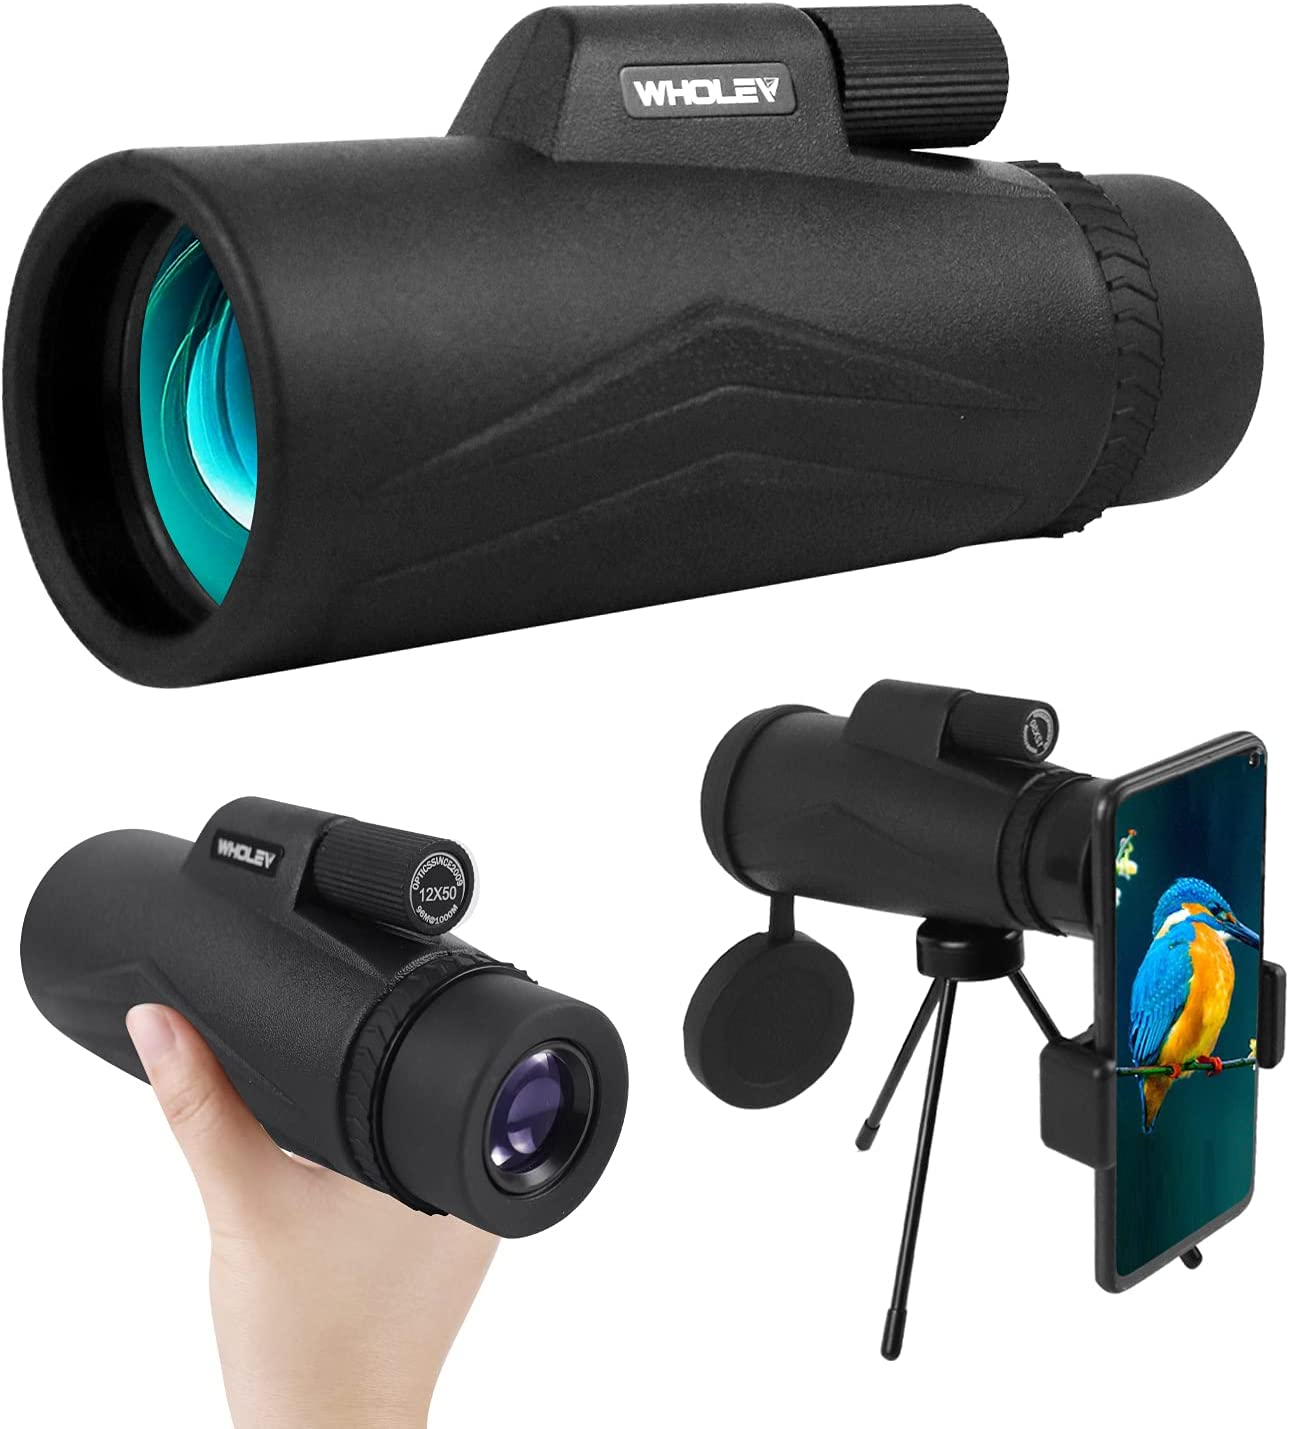 WHOLEV Popular products 12x50 Monocular Telescope for Wate Sale SALE% OFF Smartphone Prism BAK4